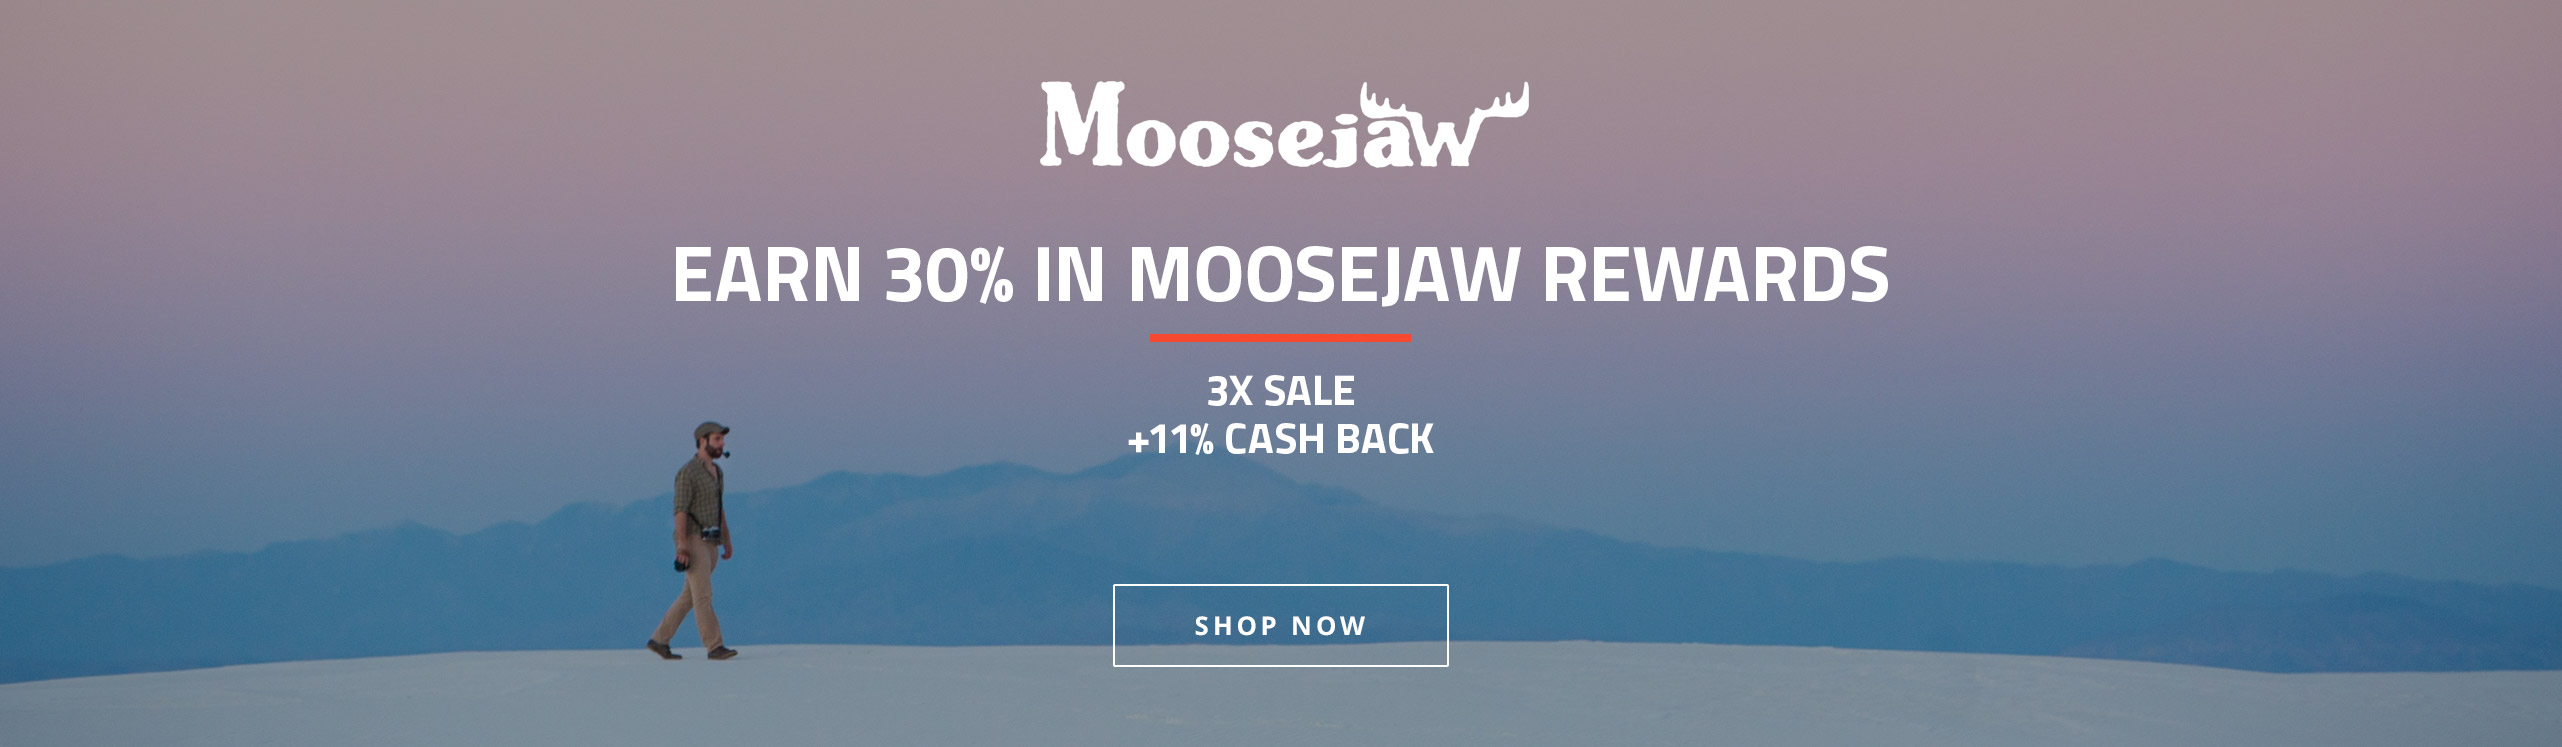 Moosejaw 3X Sale